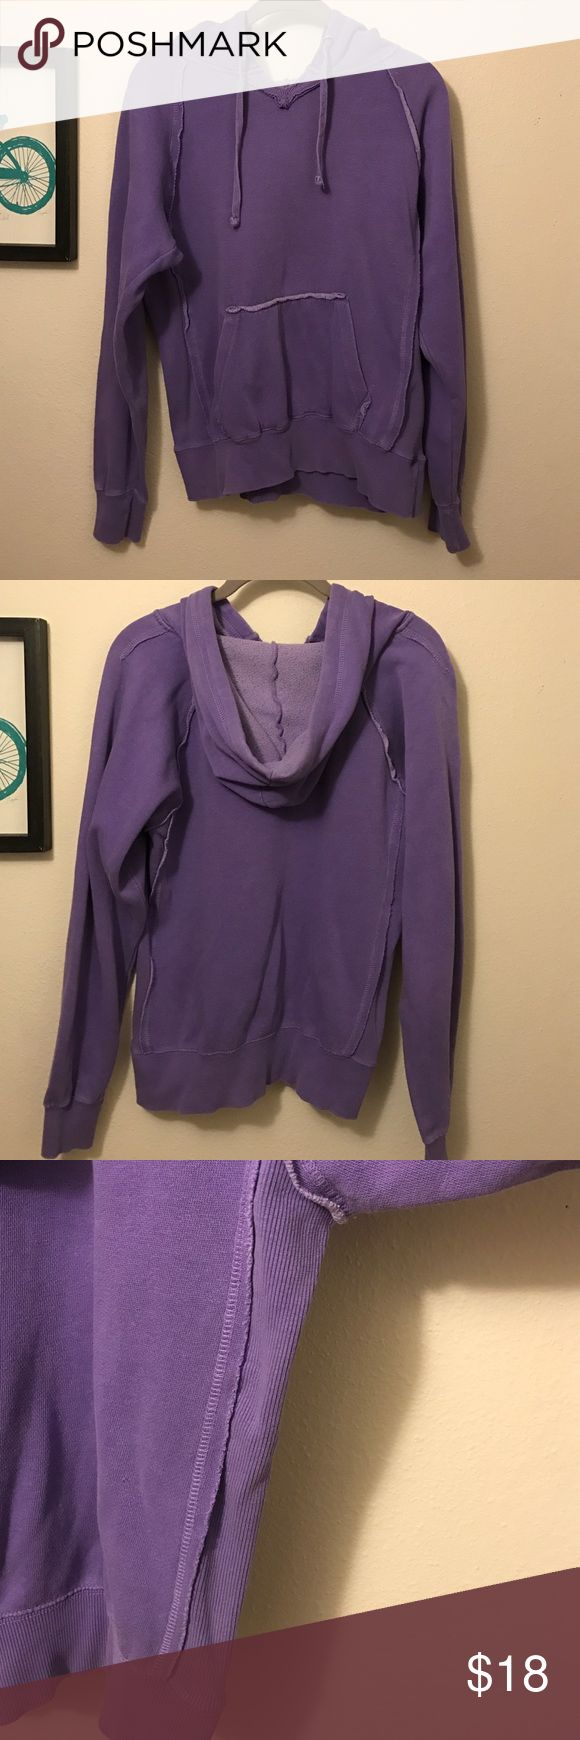 Ocean Drive purple hoodie Super comfy purple hoodie by Ocean Drive. Size L although I would say it runs a bit small. Very gently worn, no flaws! Ocean Drive Tops Sweatshirts & Hoodies